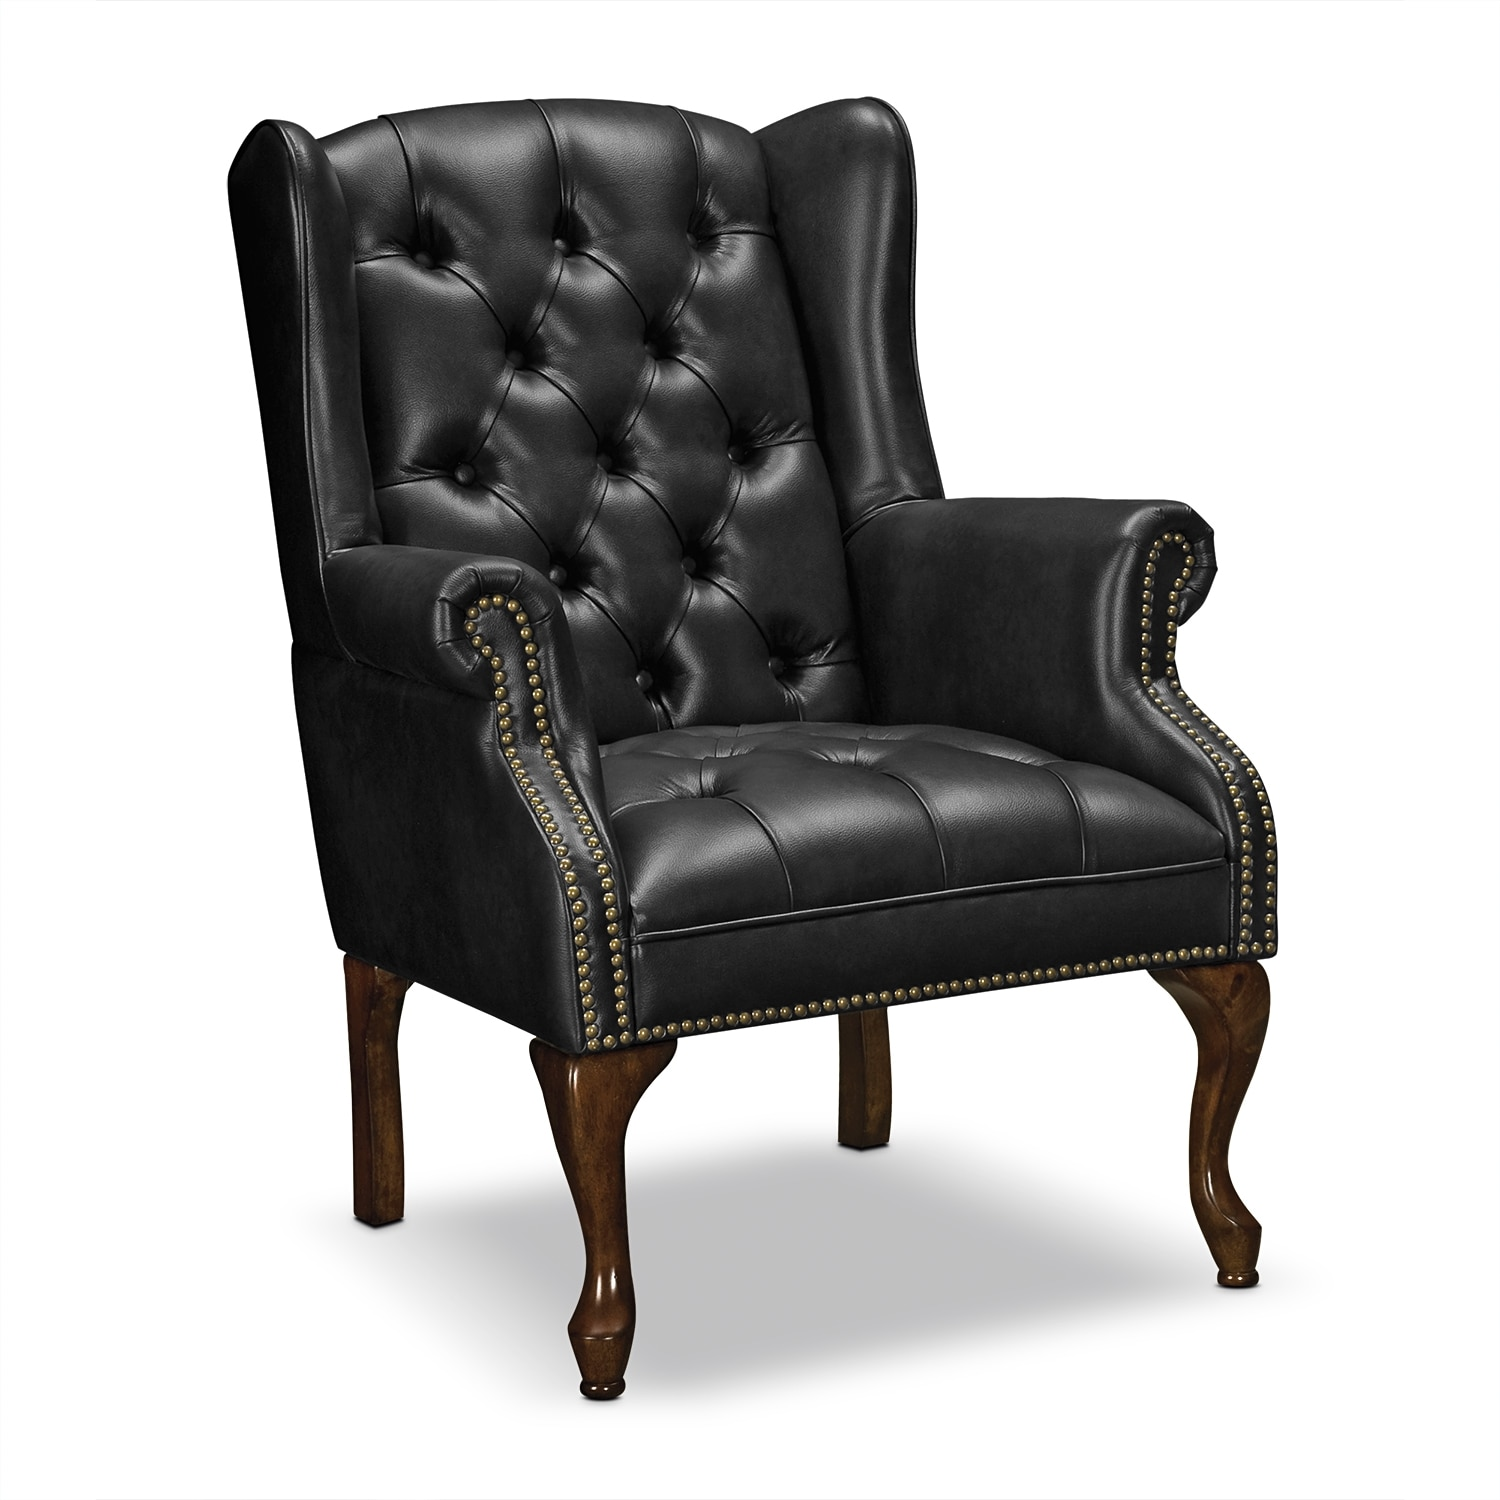 [Classic Accent Chair]